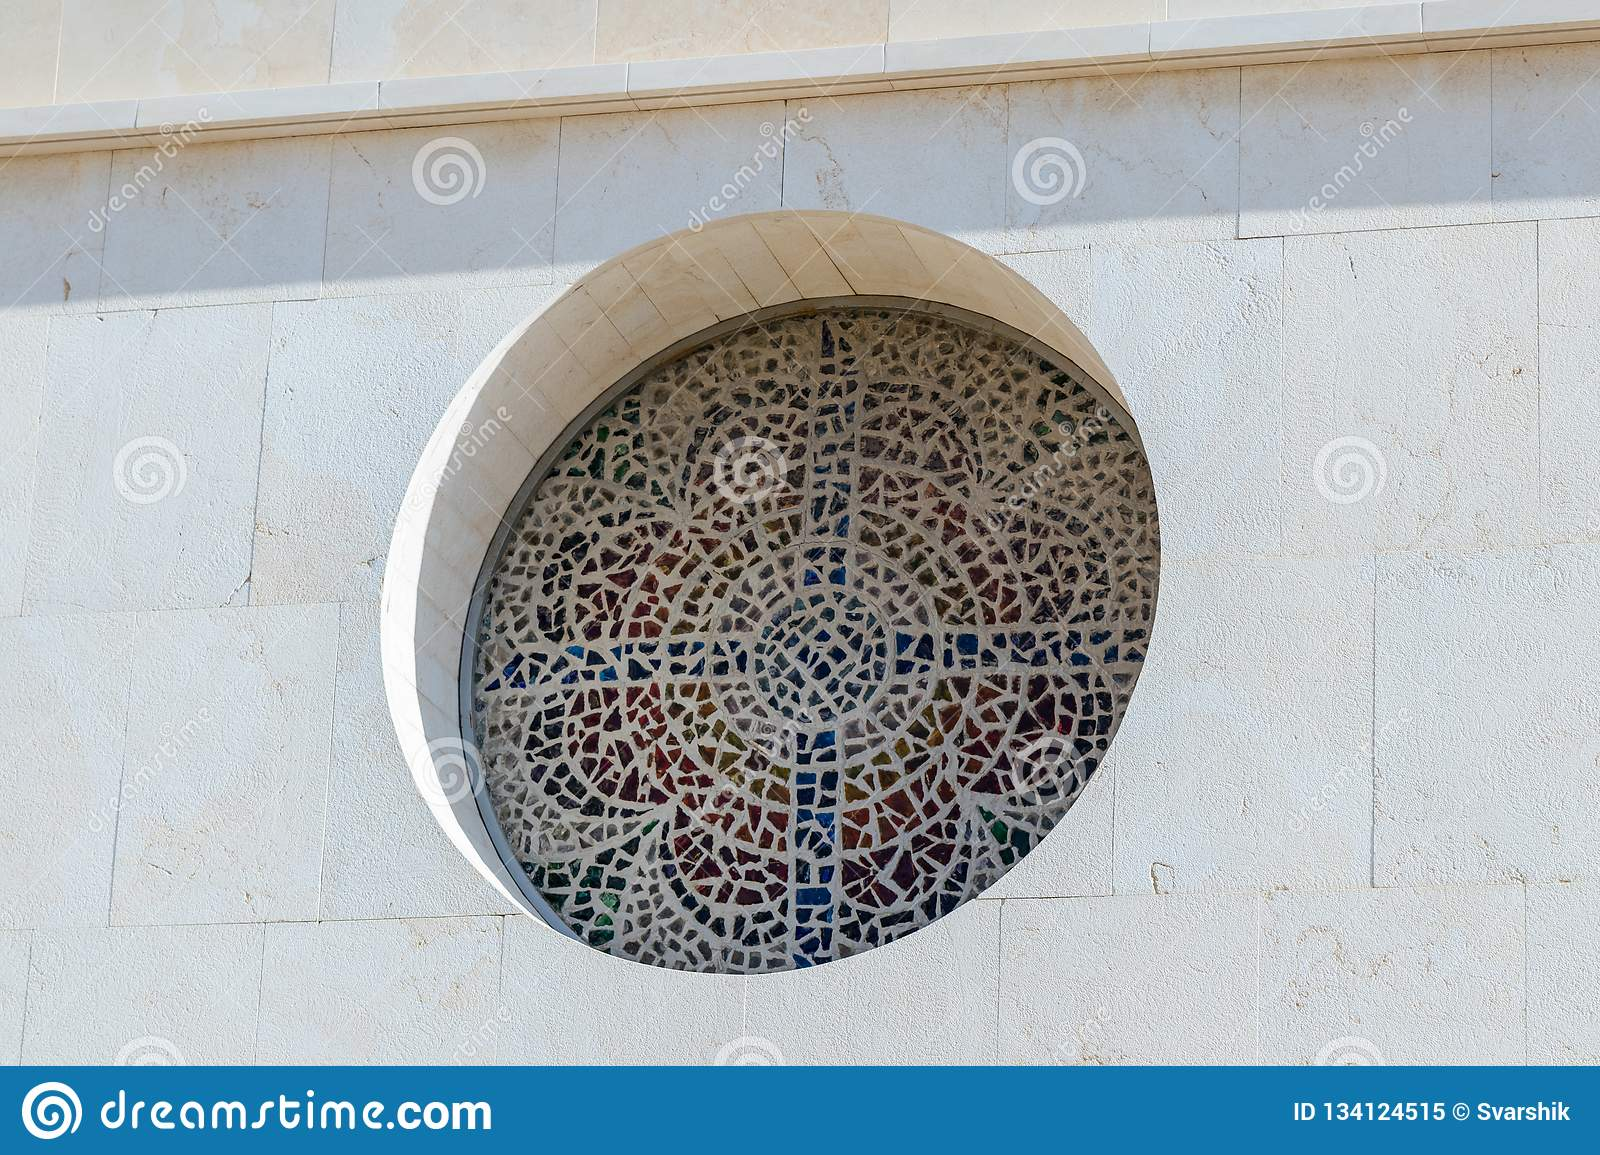 Stained glass window in the form of a cross in Memorial Church of Moses on Mount Nebo near the city of Madaba in Jordan